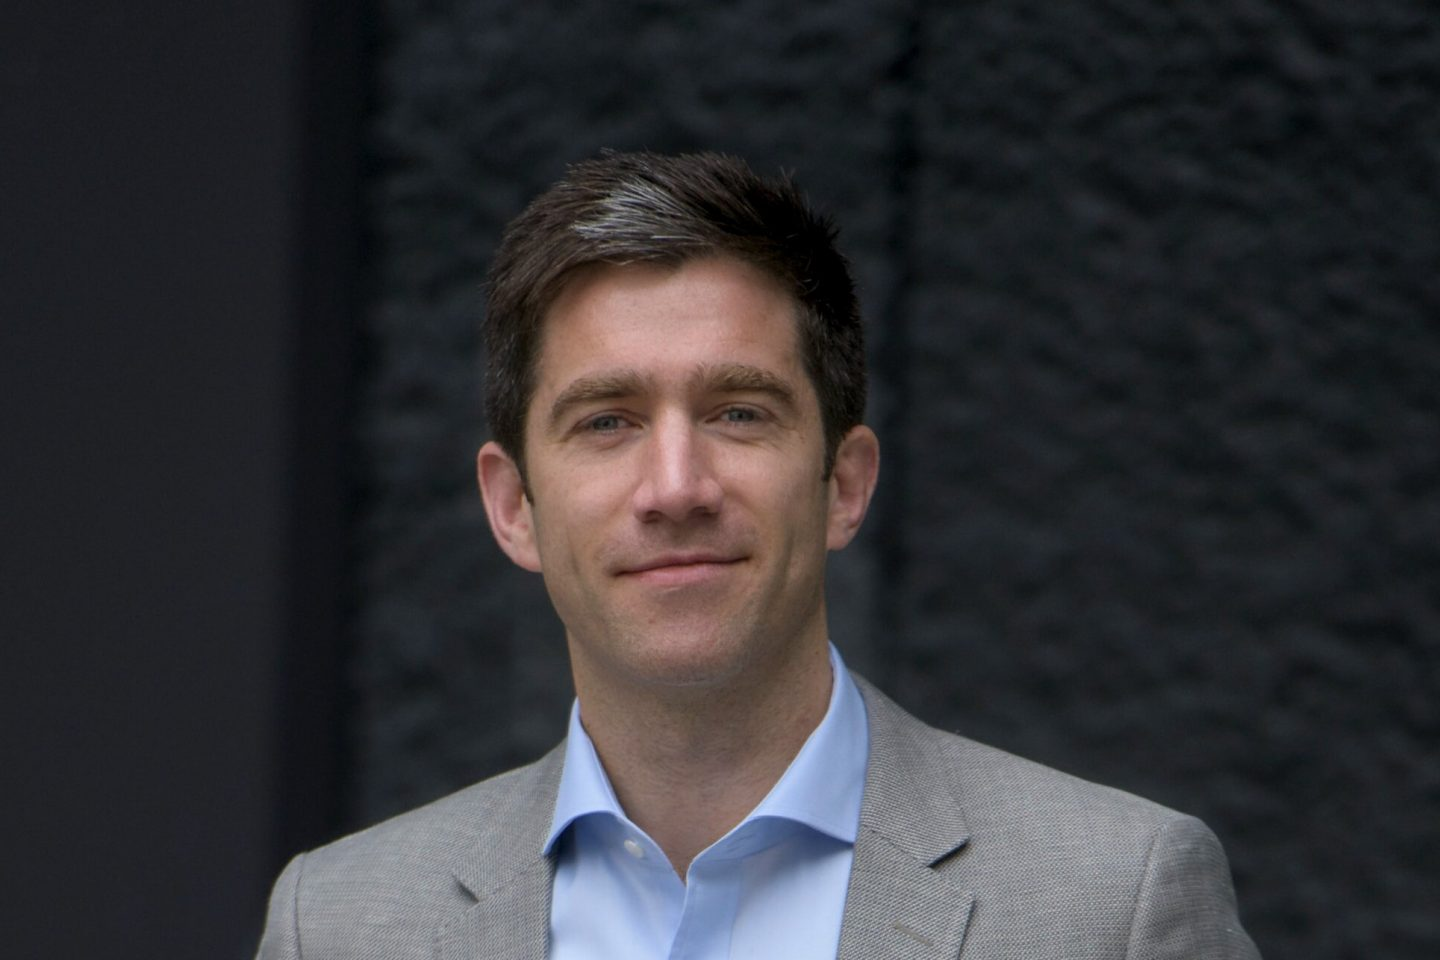 Talk to Customers and Perfect the Product - Philip Brophy, Founder of PushMe